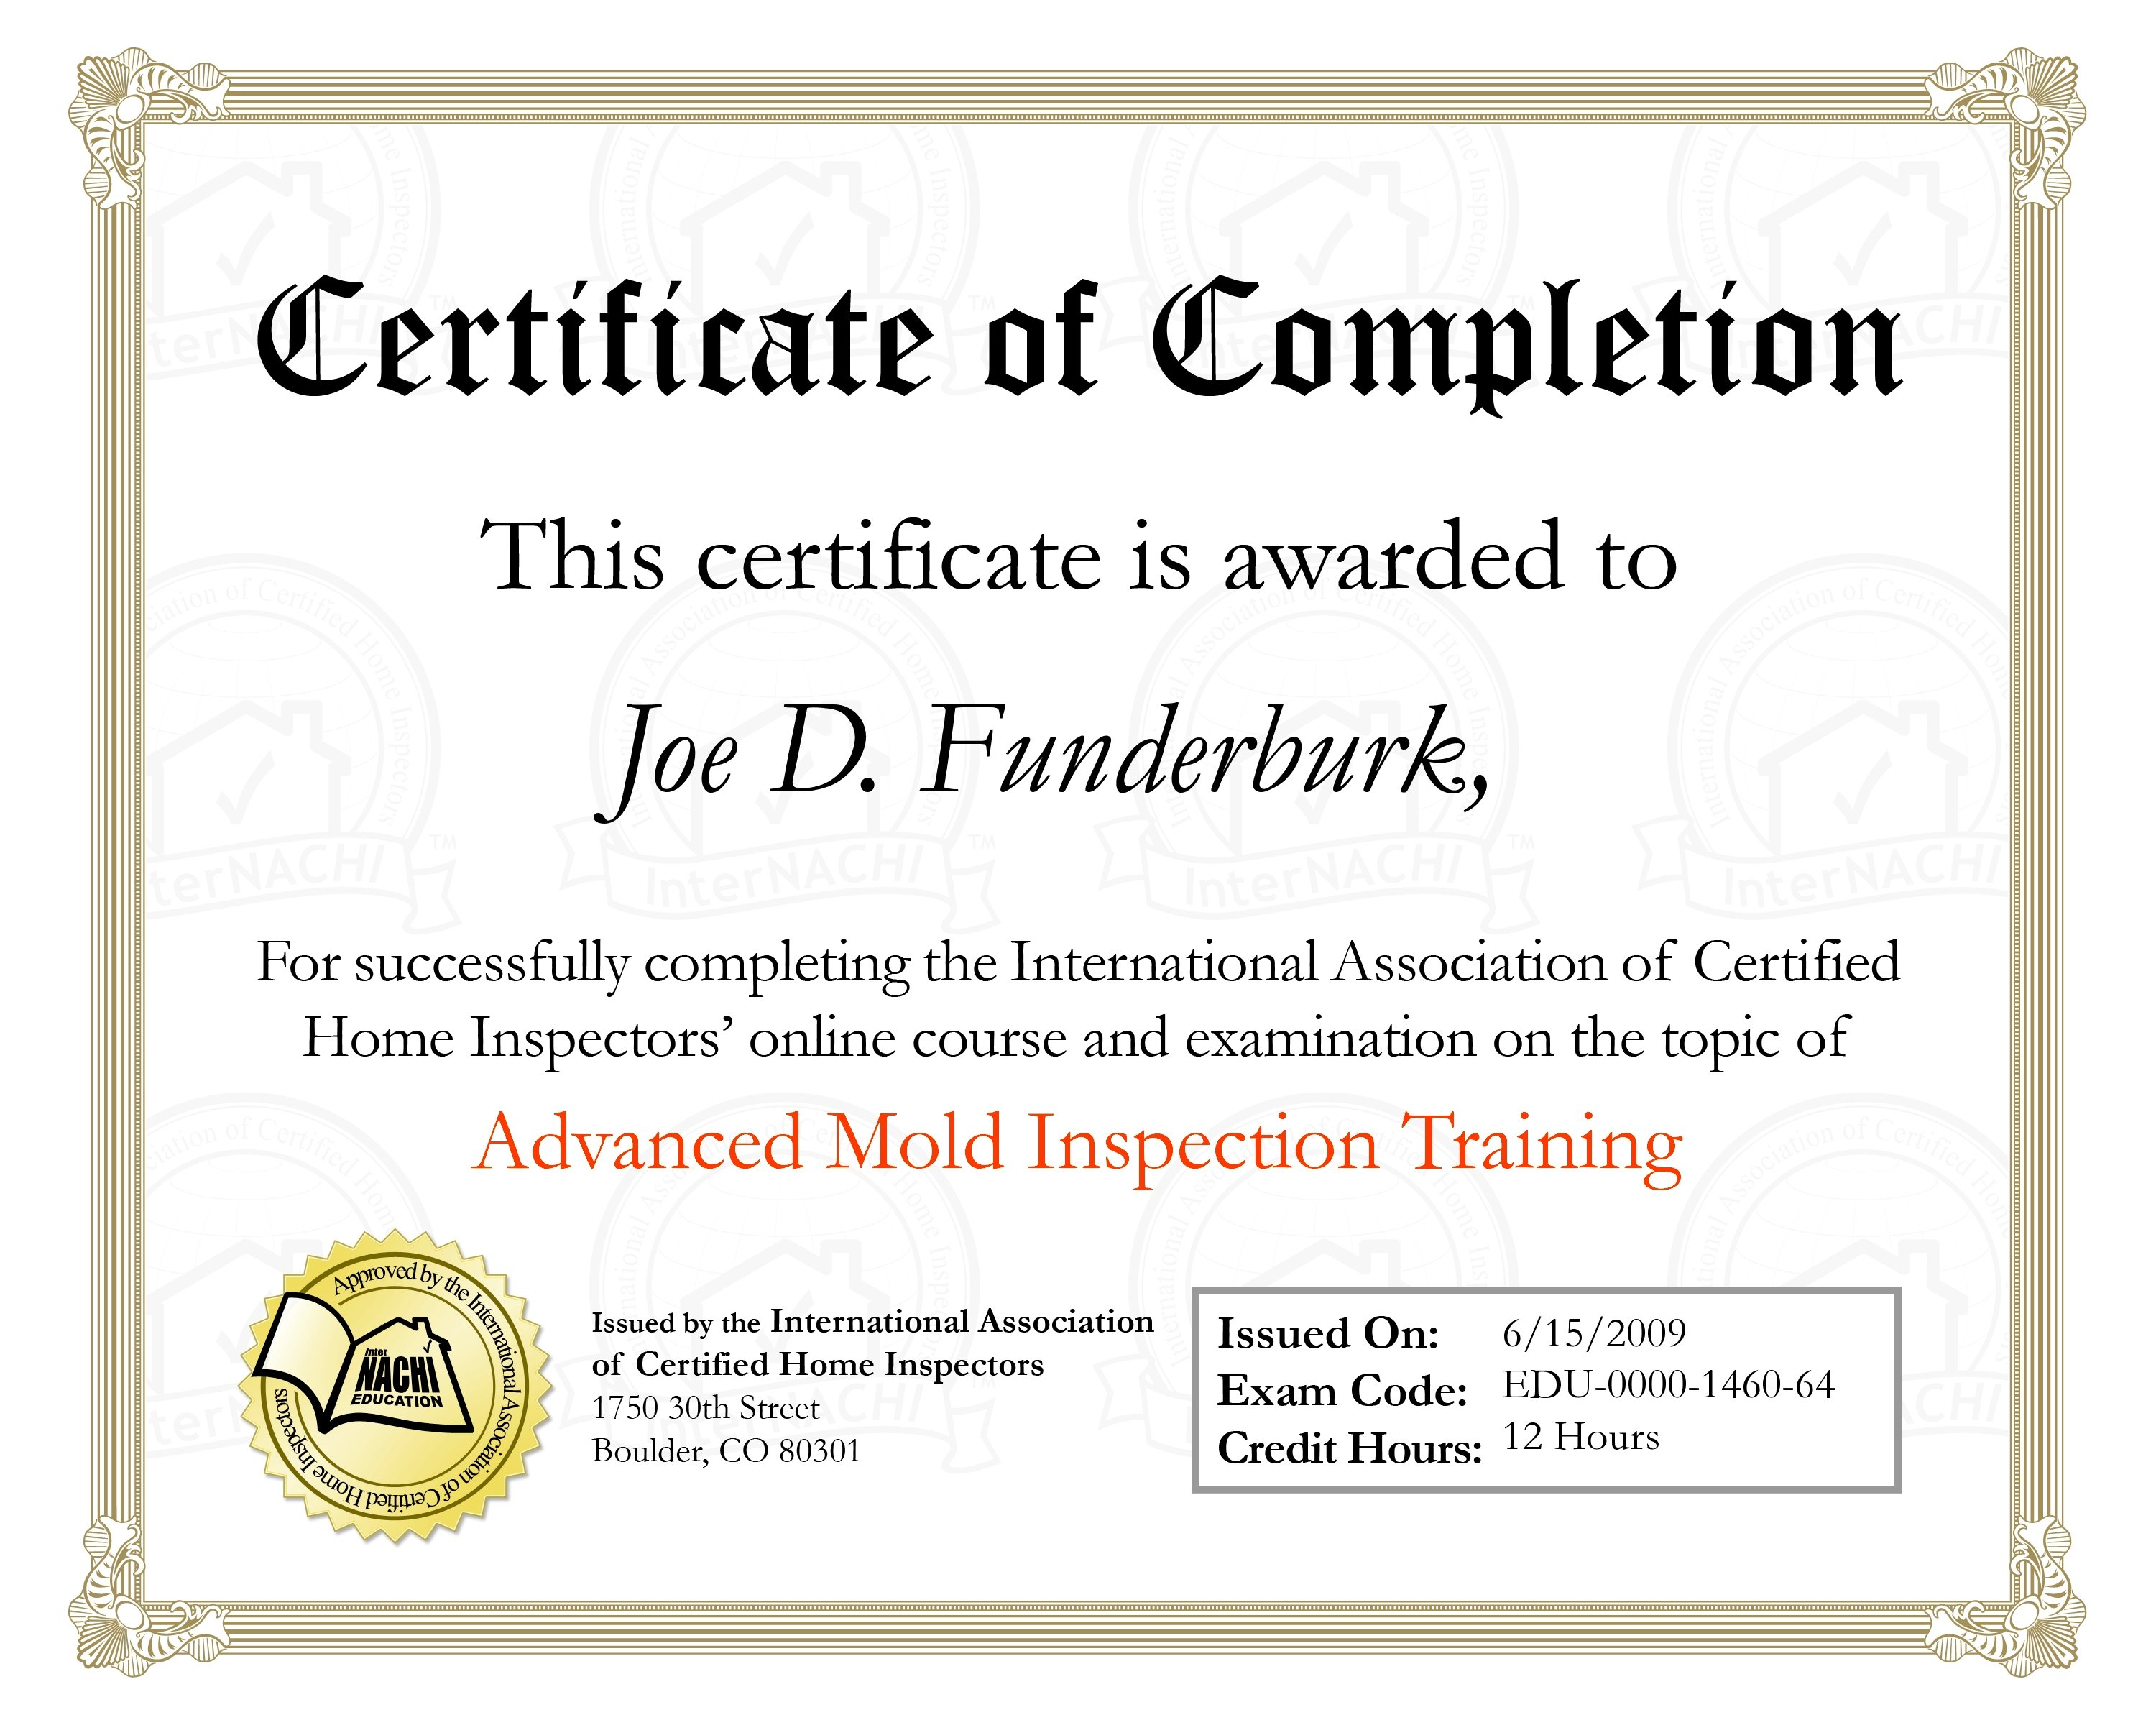 Green belt certificate template choice image certificate design six sigma green belt certification sample questions xflitez Images